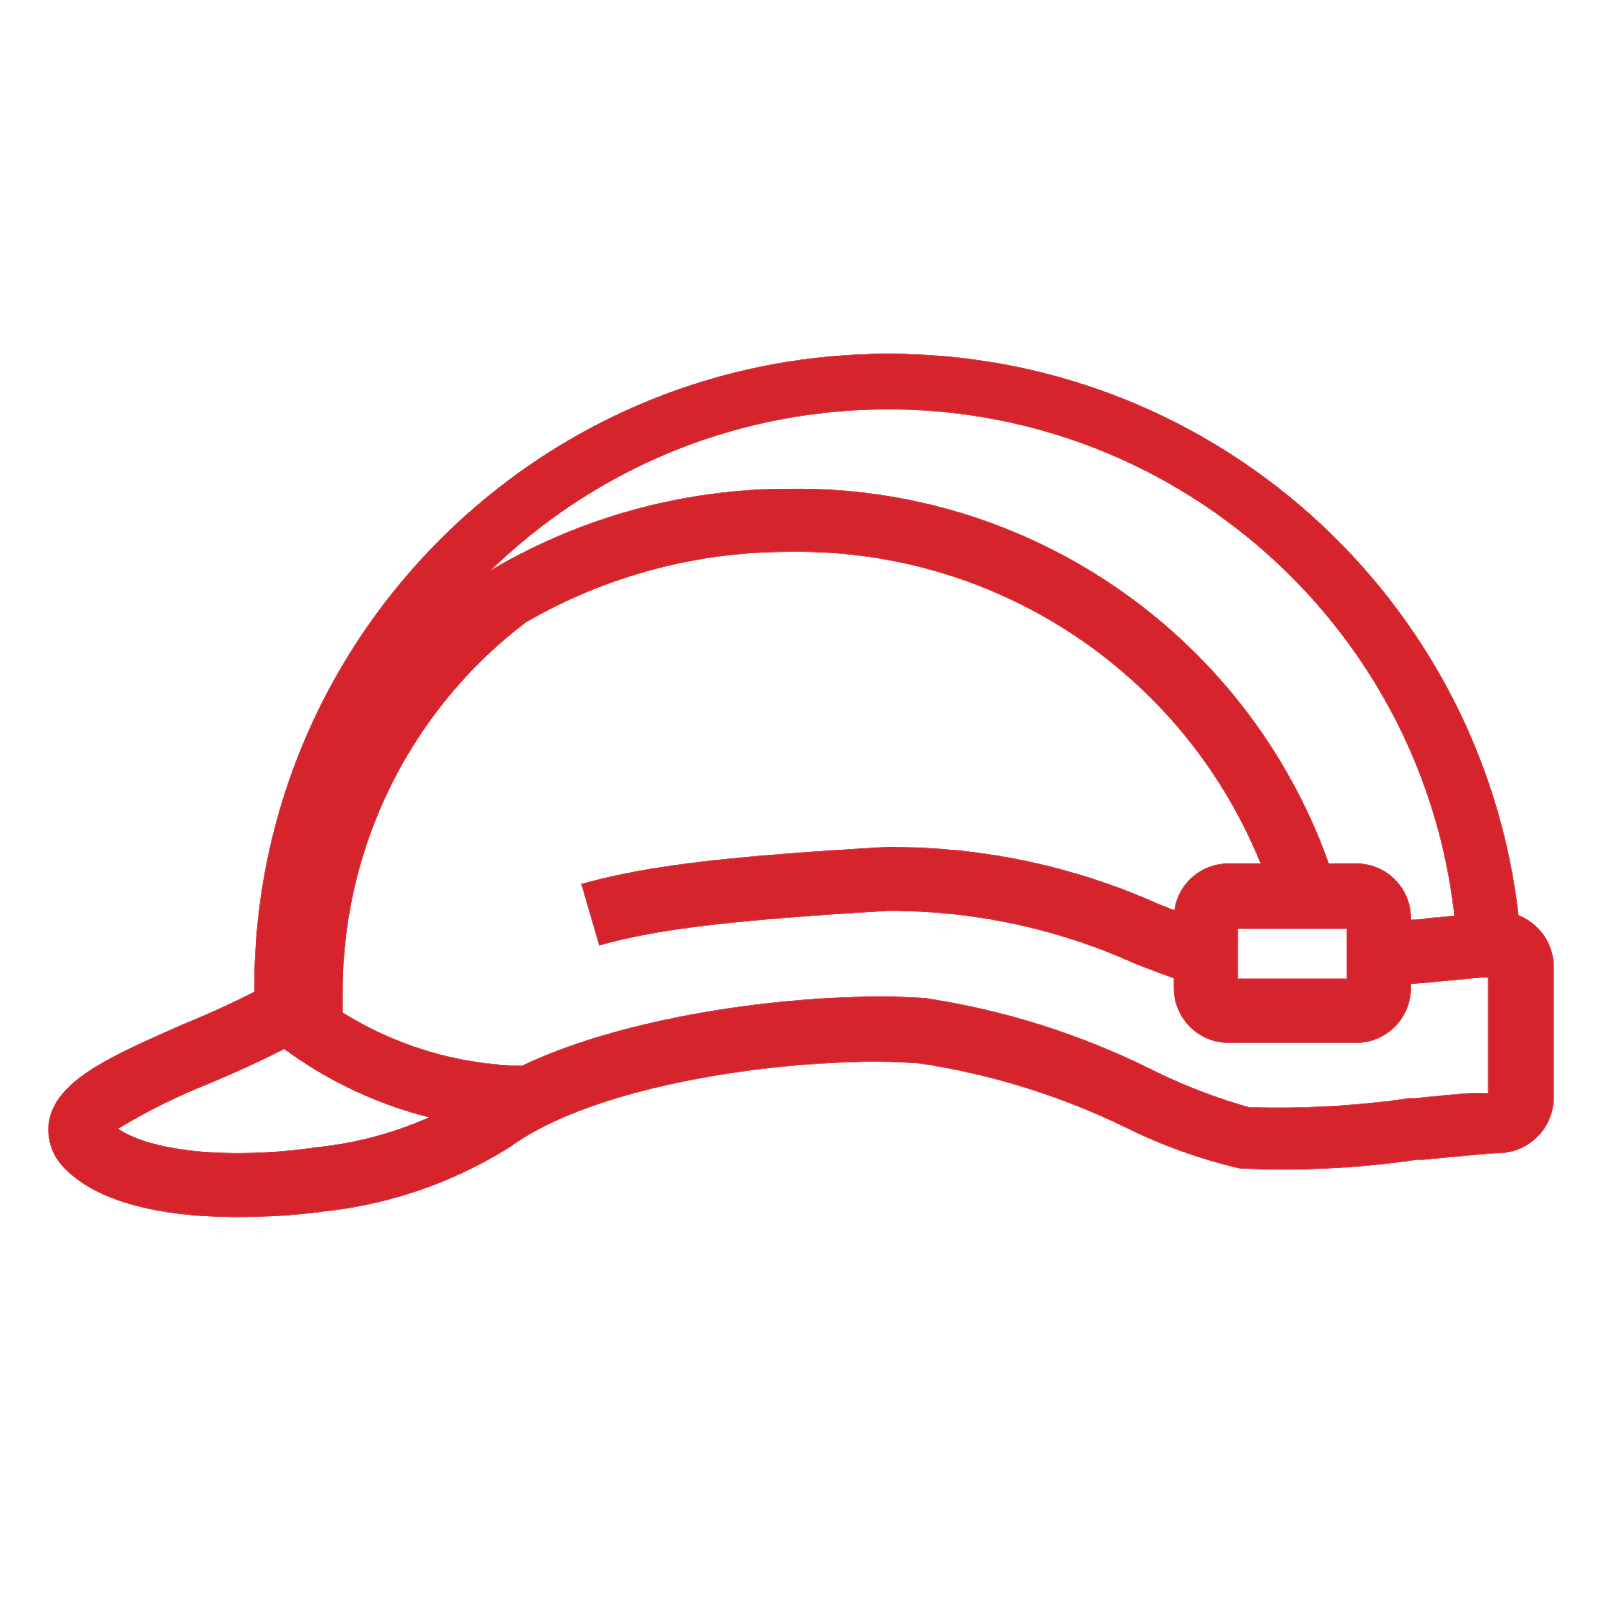 Role icon depicting a construction hard hat